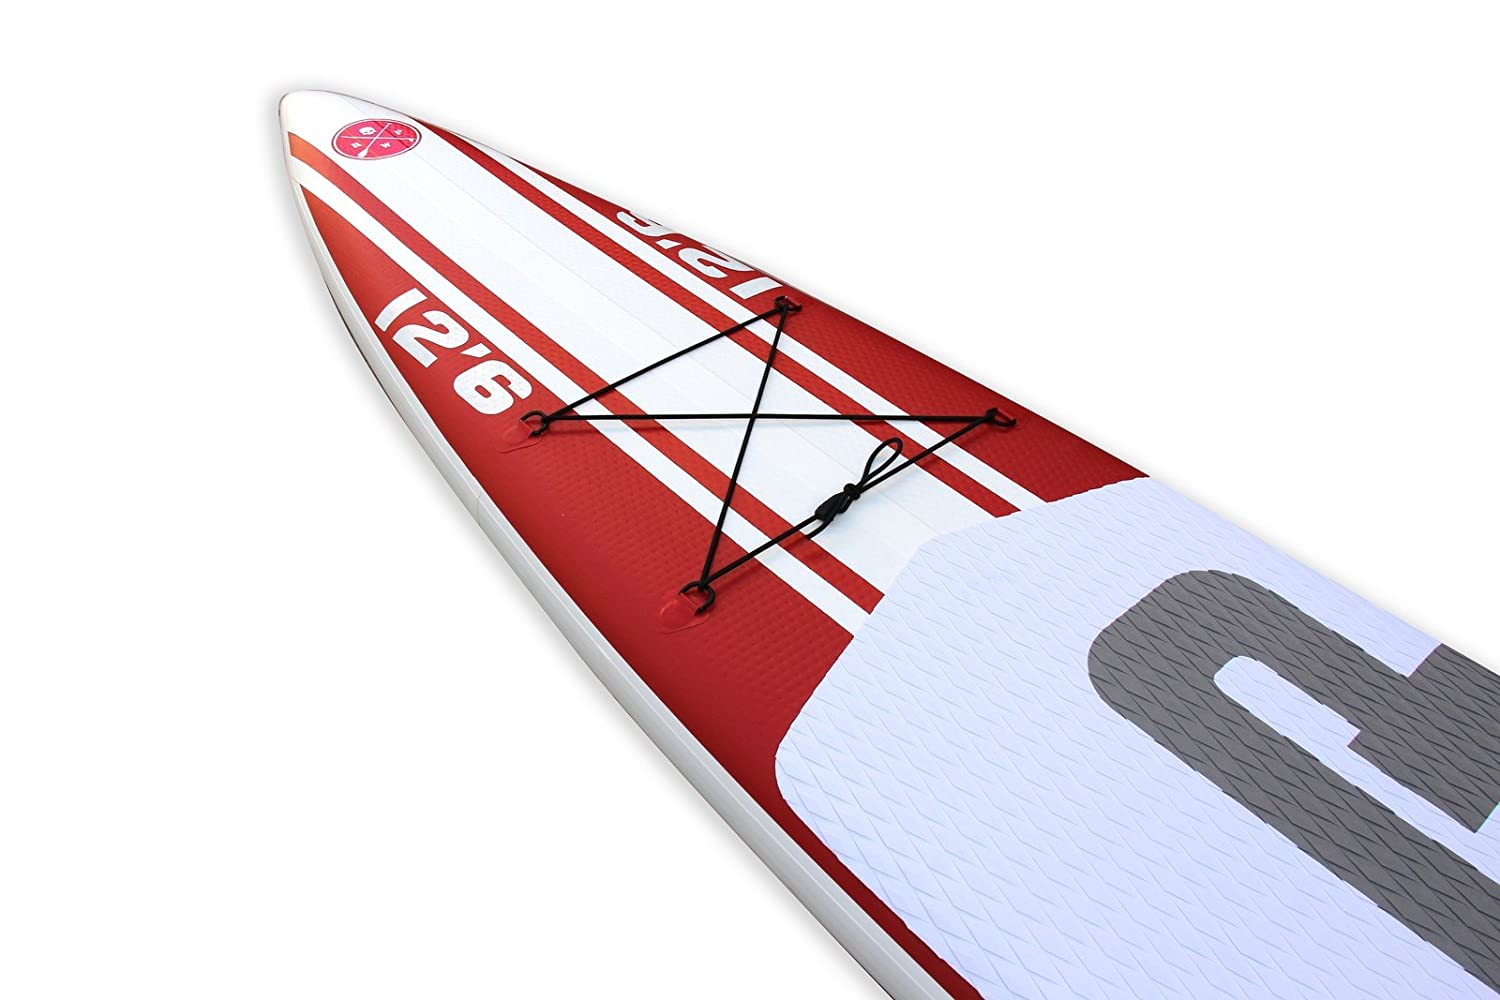 Redwood Paddle 12 6 raza inflable SUP Stand Up Paddle Board: Amazon.es: Deportes y aire libre